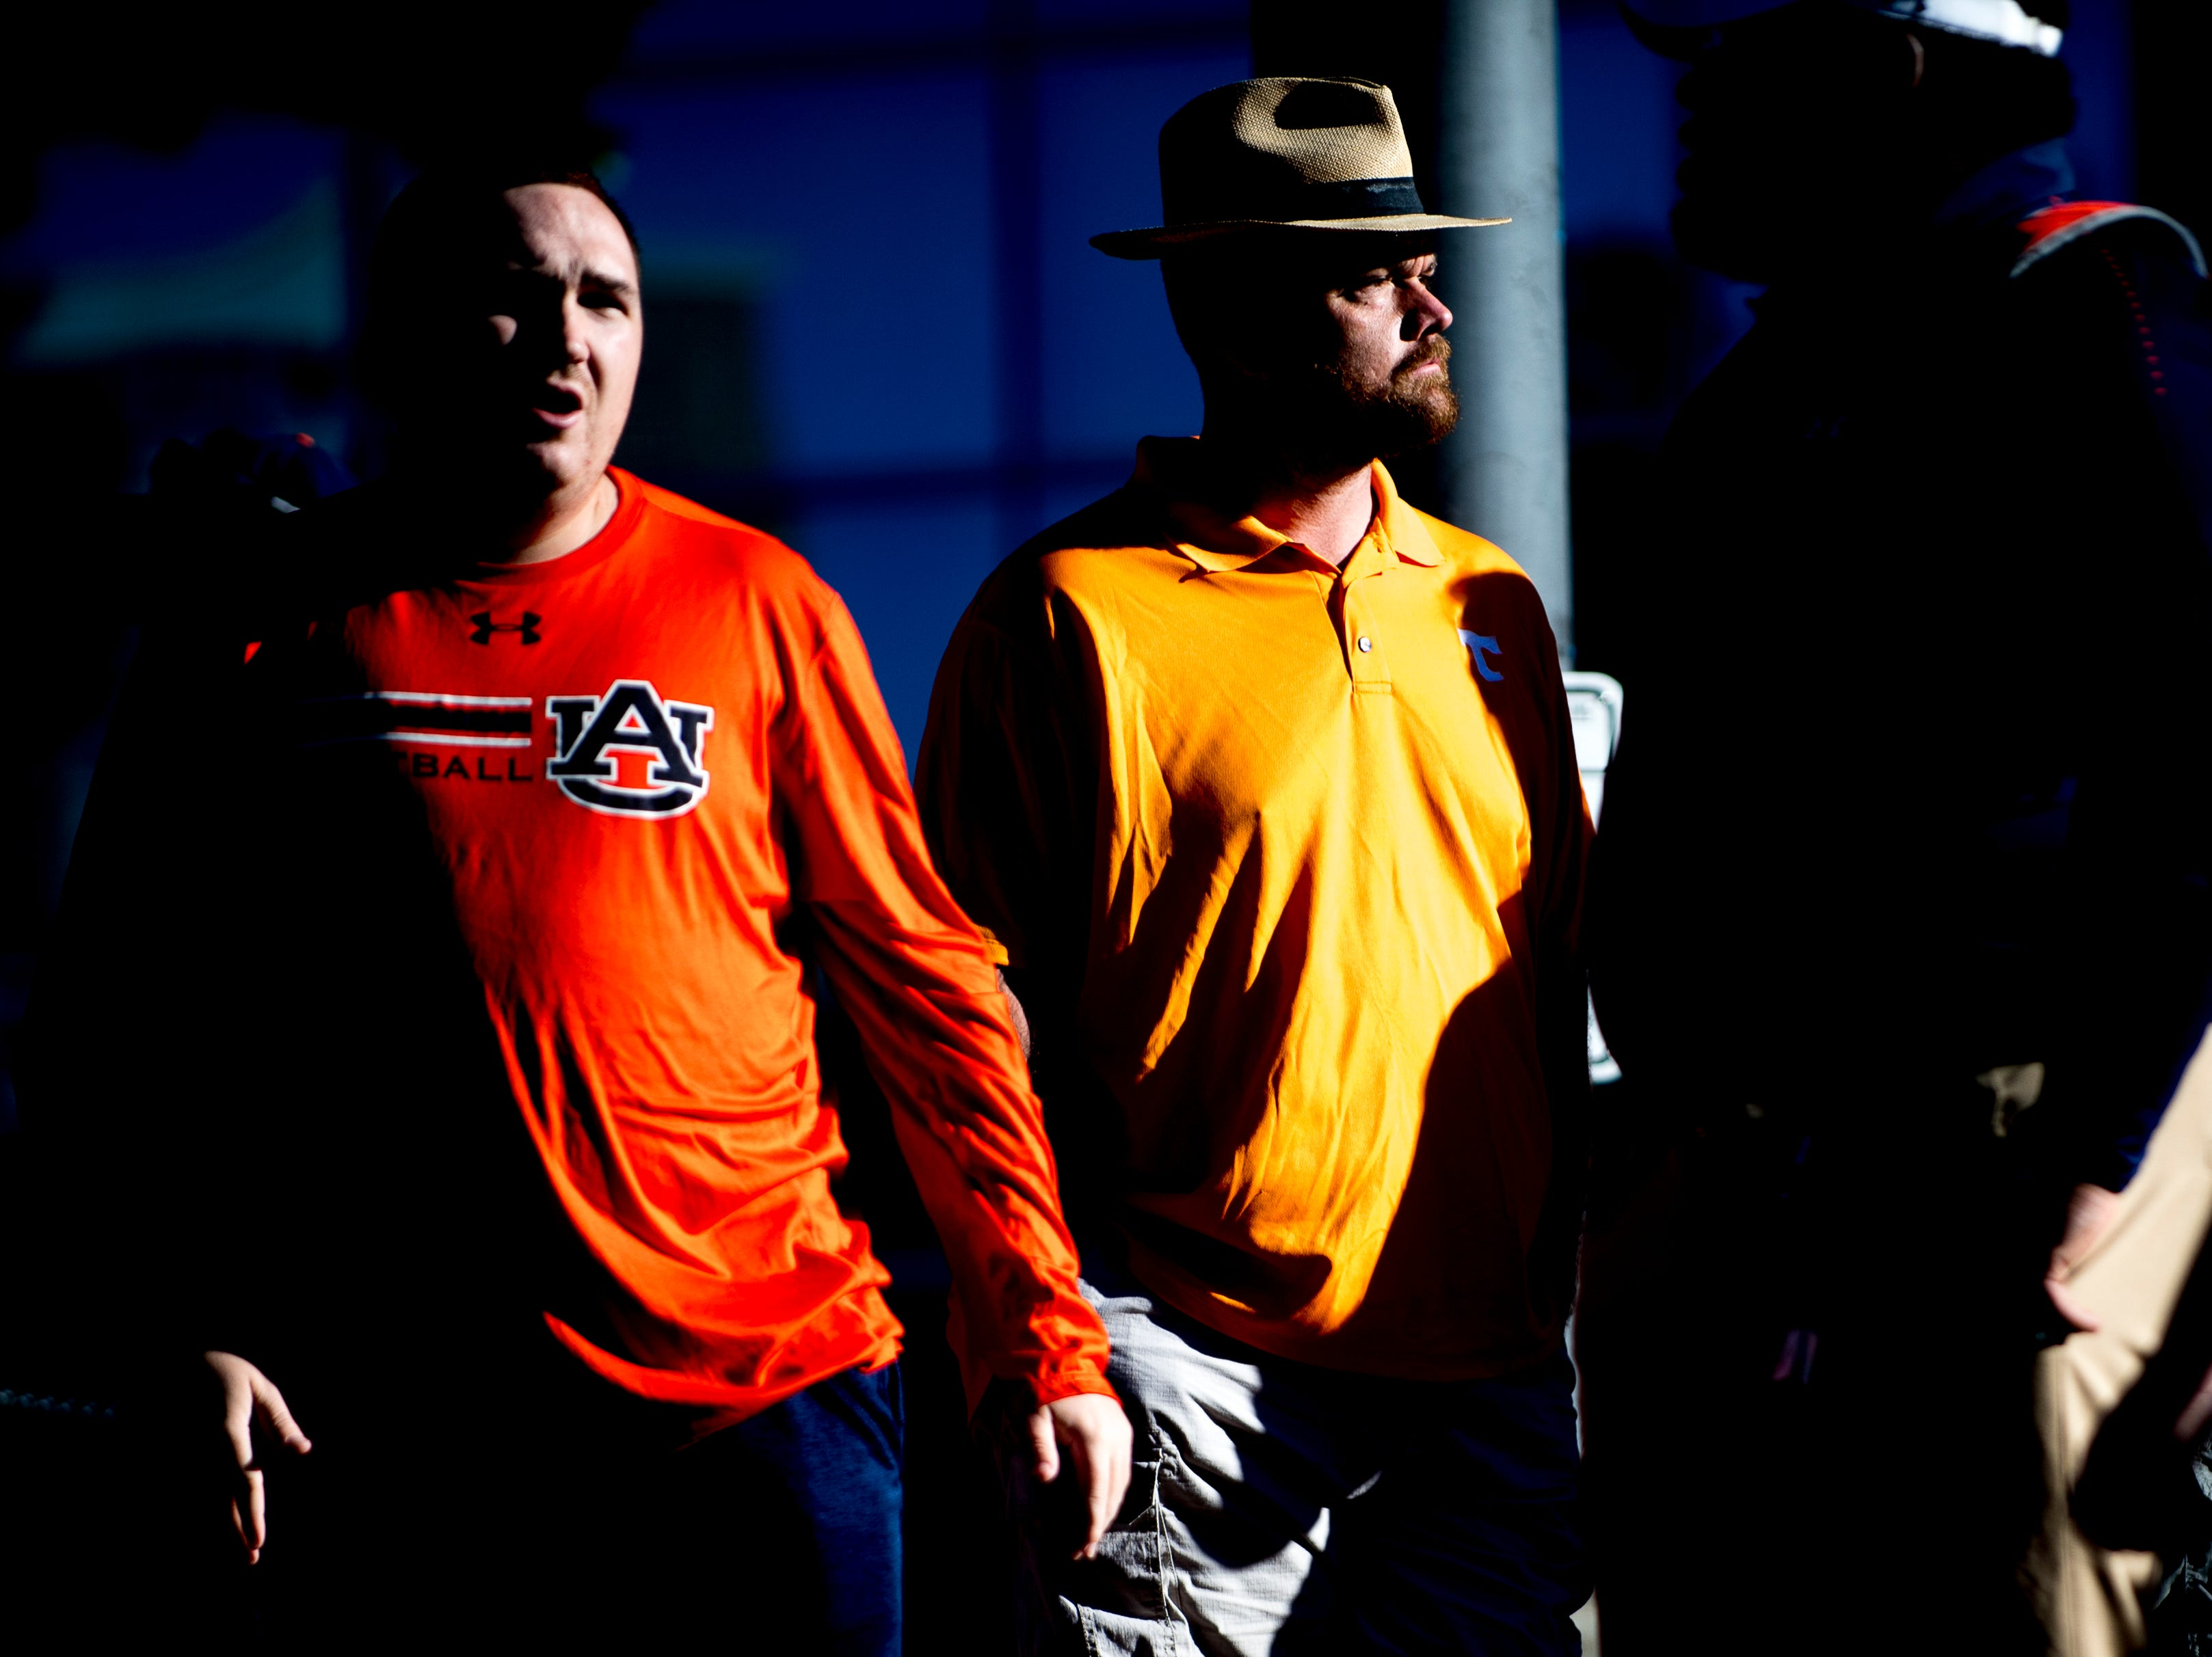 Fans wait for the Tiger Walk during a game between Tennessee and Auburn at Jordan-Hare Stadium in Auburn, Alabama on Saturday, October 13, 2018.